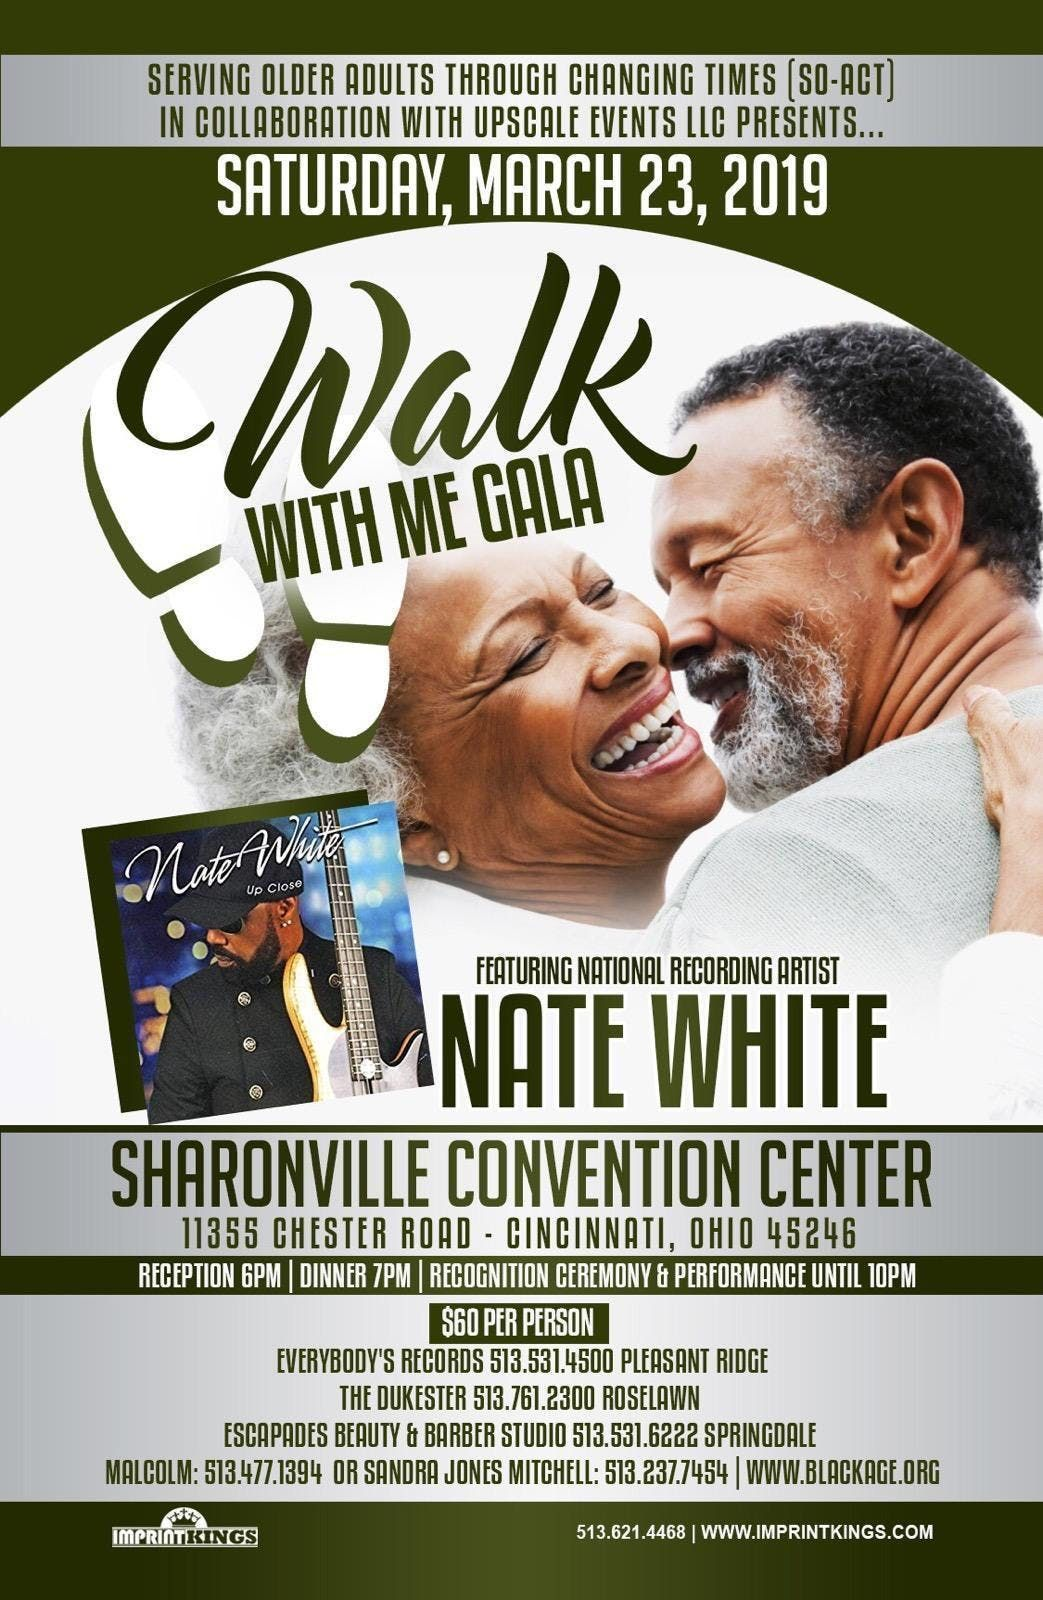 WALK WITH ME GALA FEATURING NATIONAL RECORDING ARTIST NATE WHITE